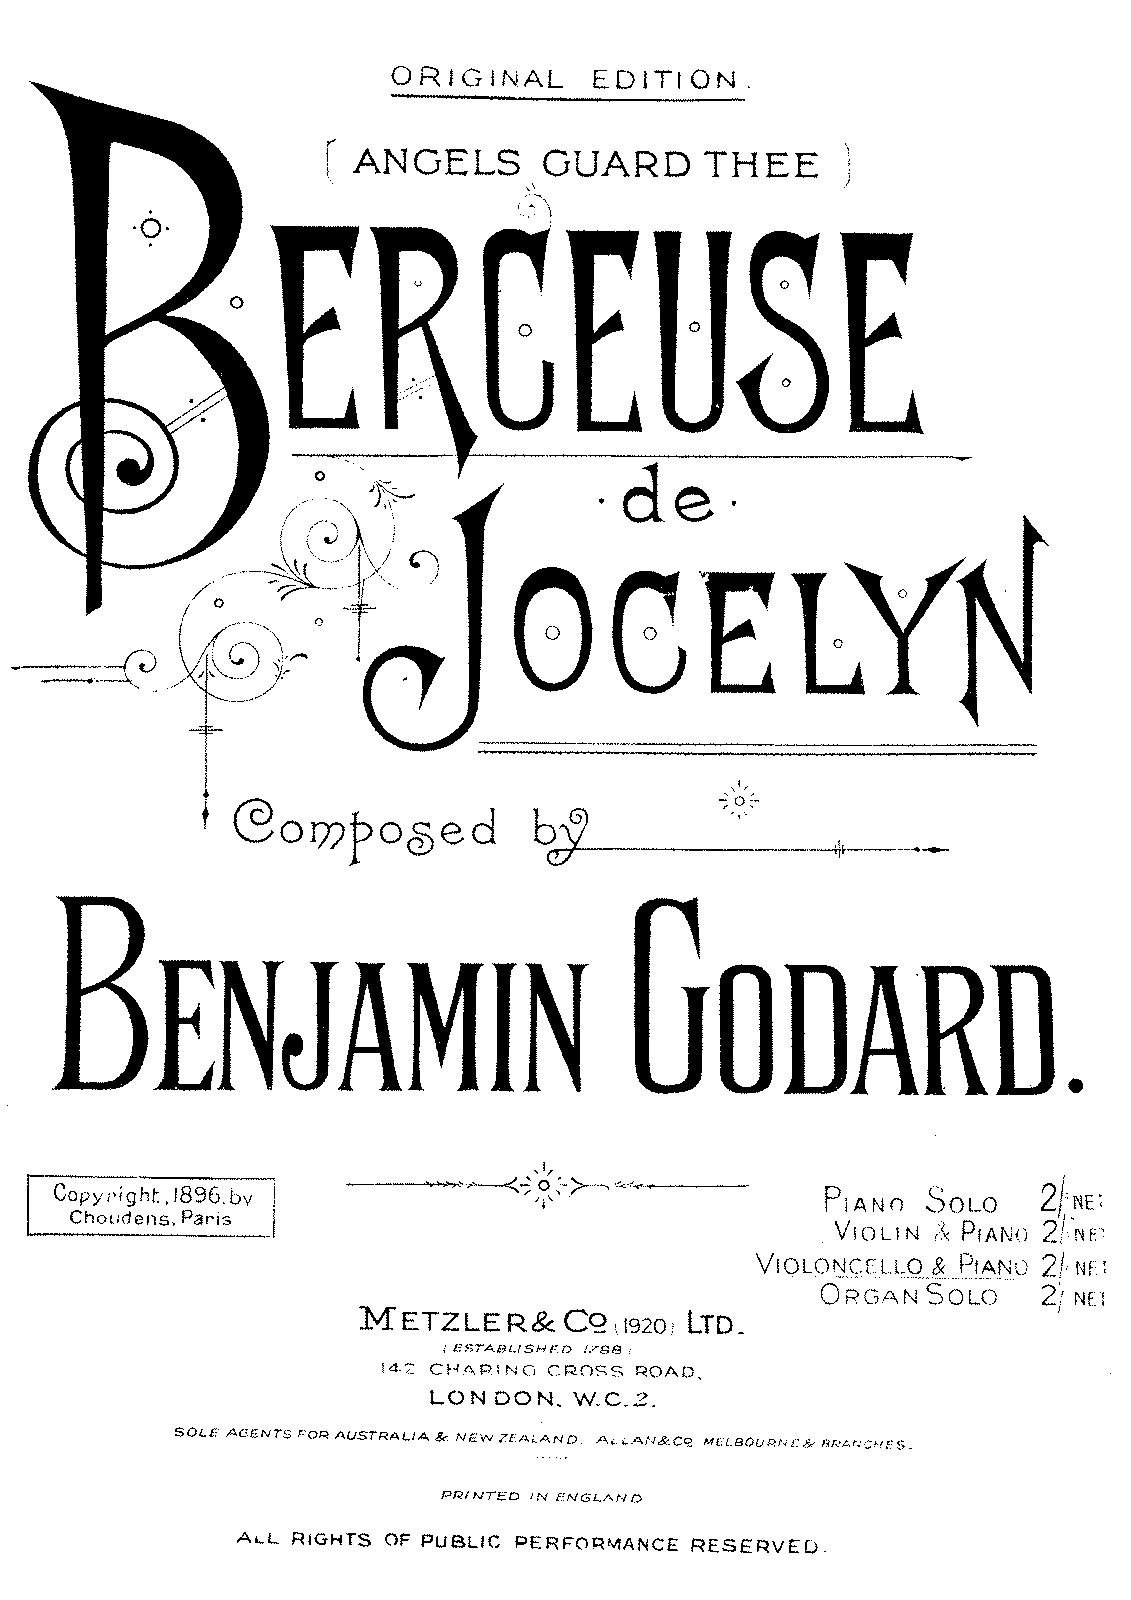 PMLP09935-Godard Berceuse de Jocelyn Cello Piano.pdf